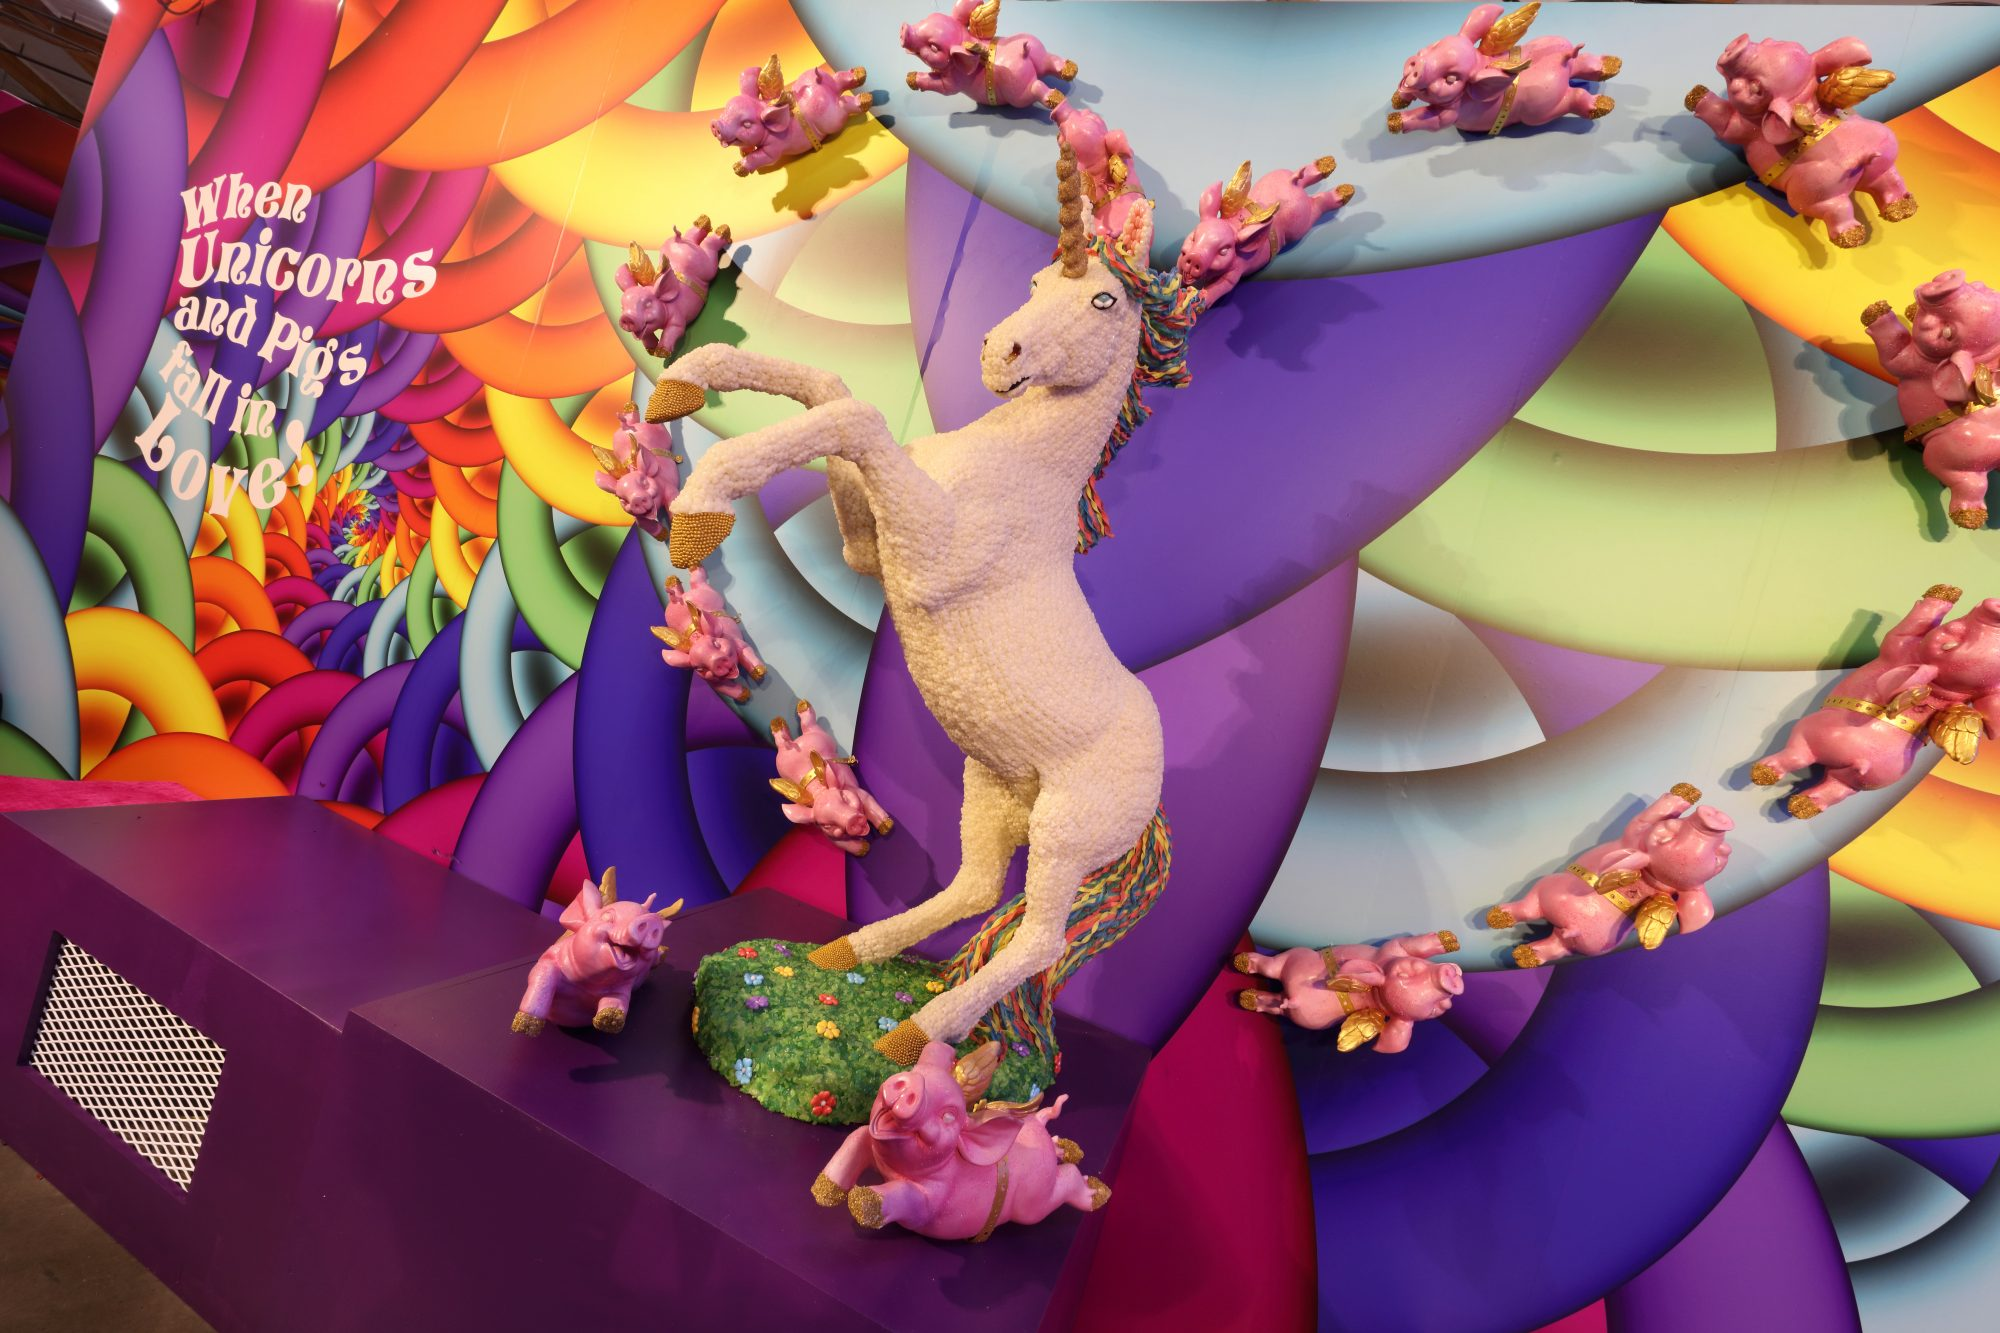 Here's What It's Like Inside L.A.'s New, Whimsical Candytopia